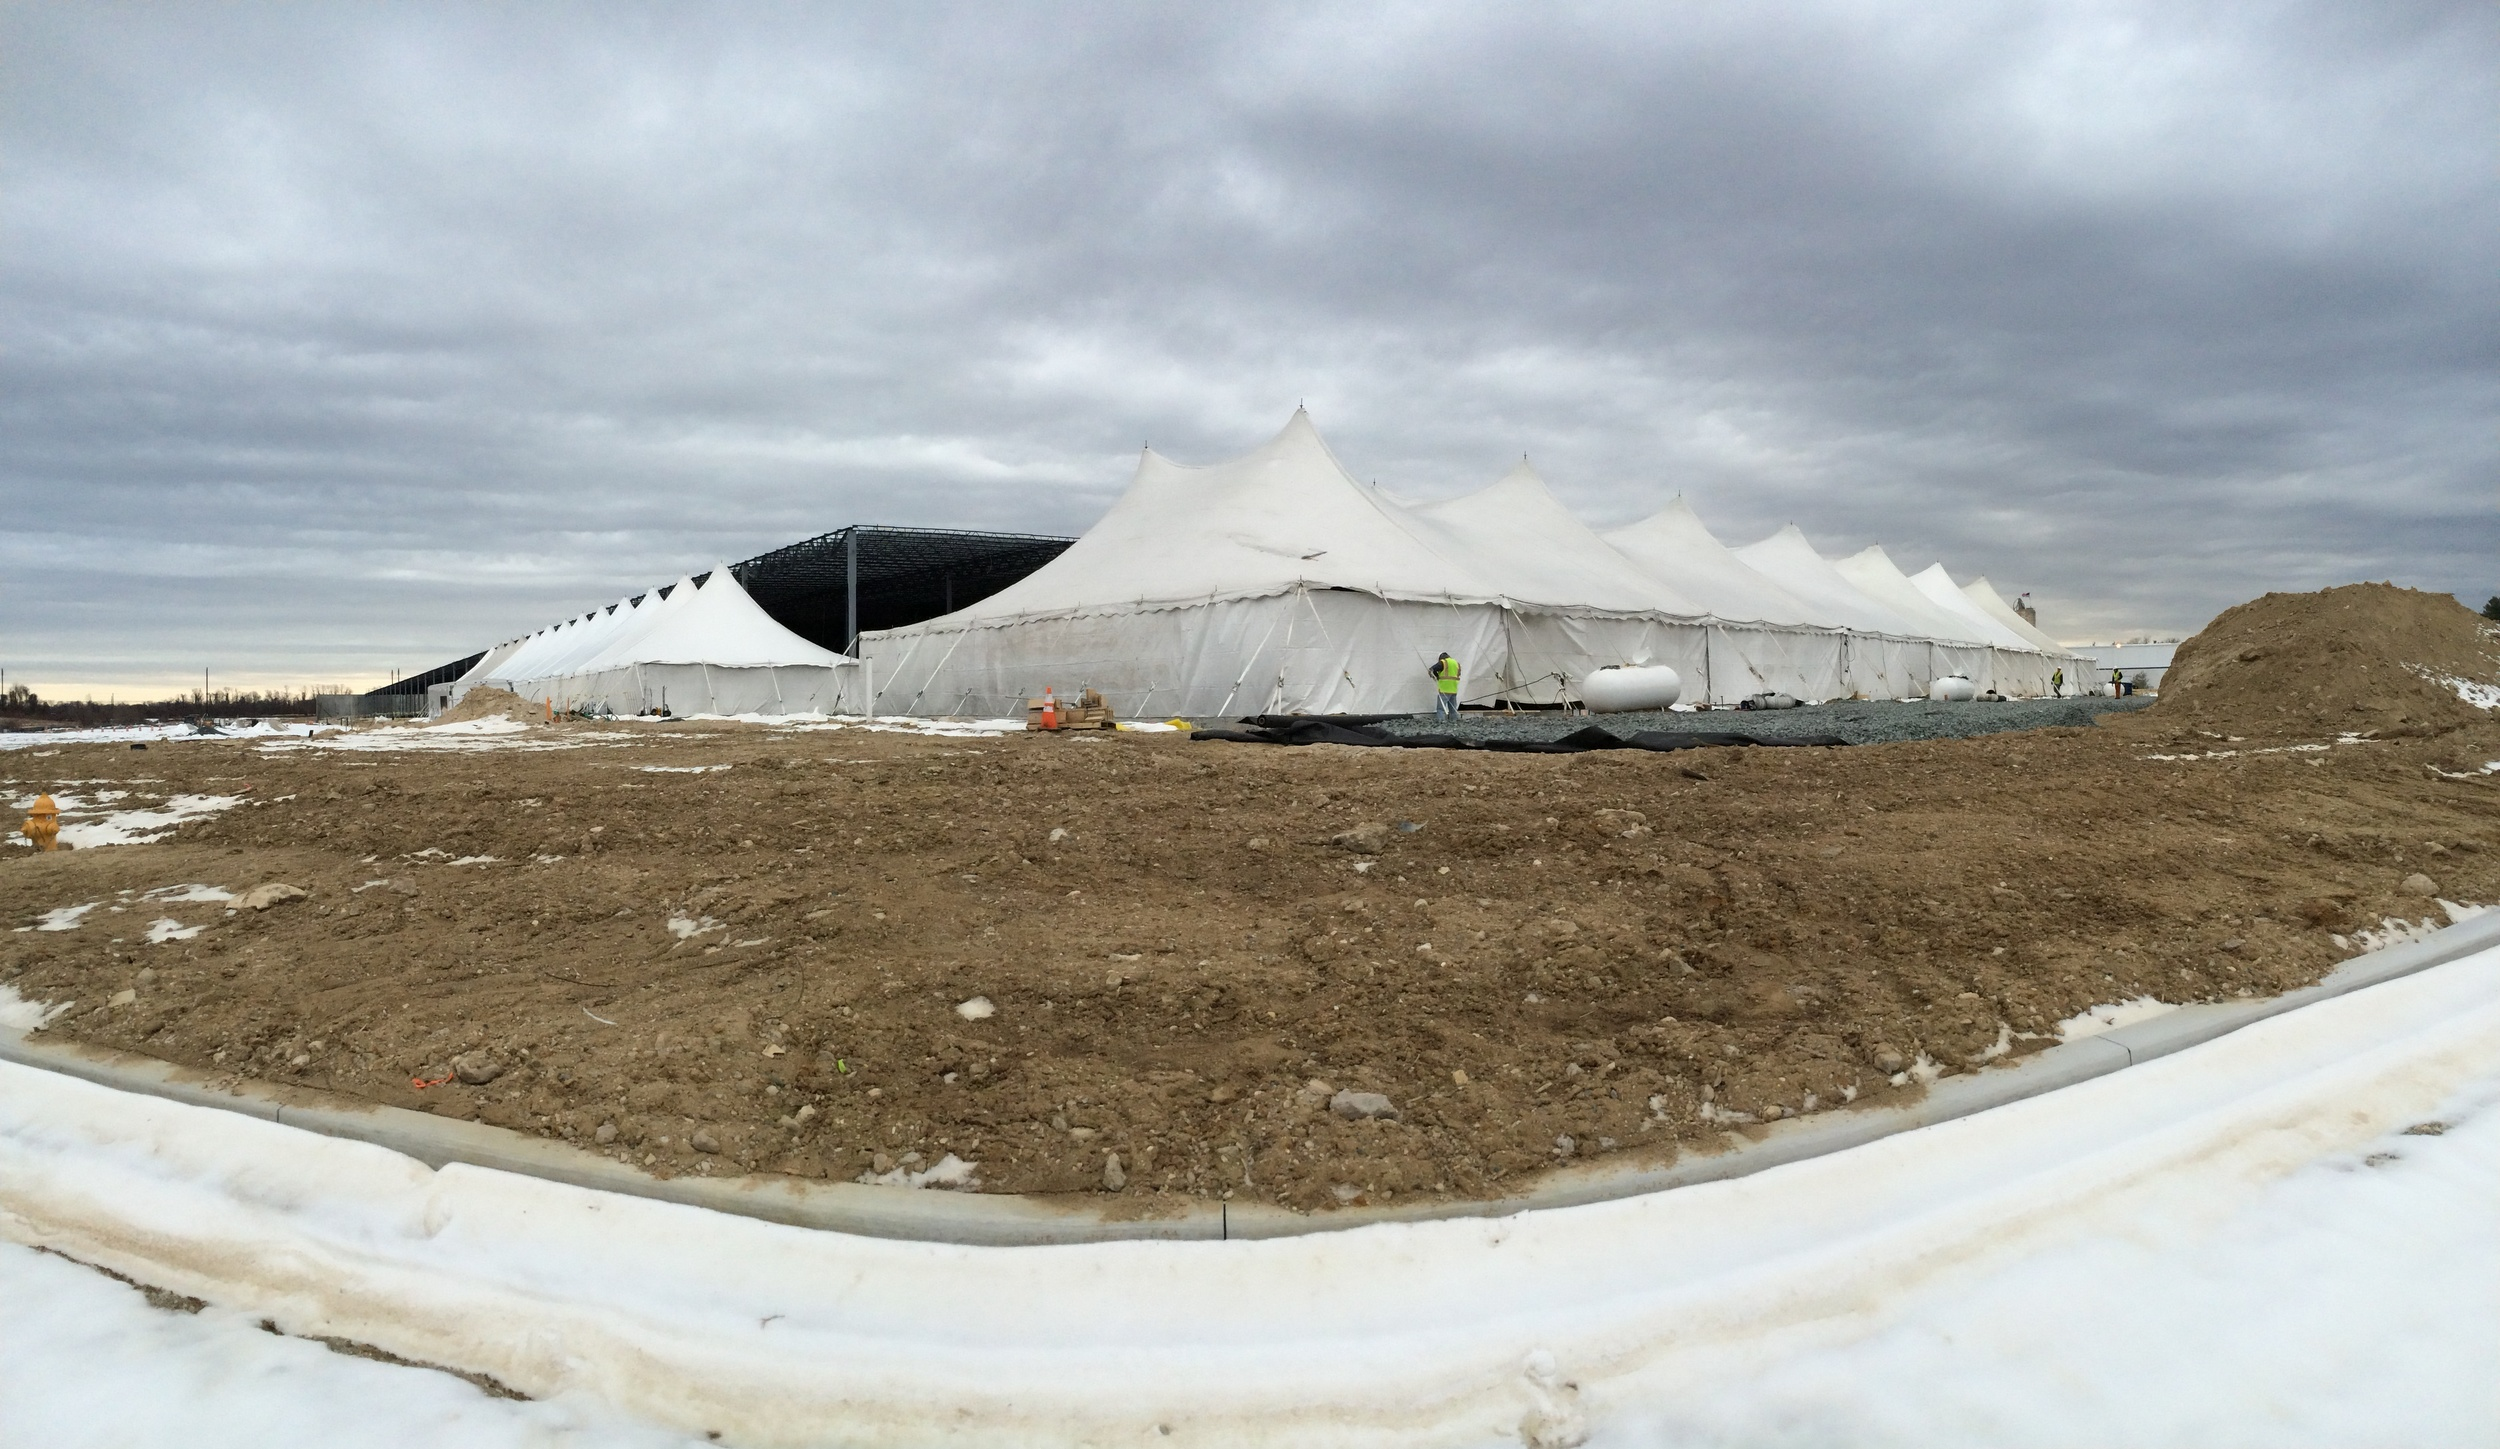 Commercial building construction tent